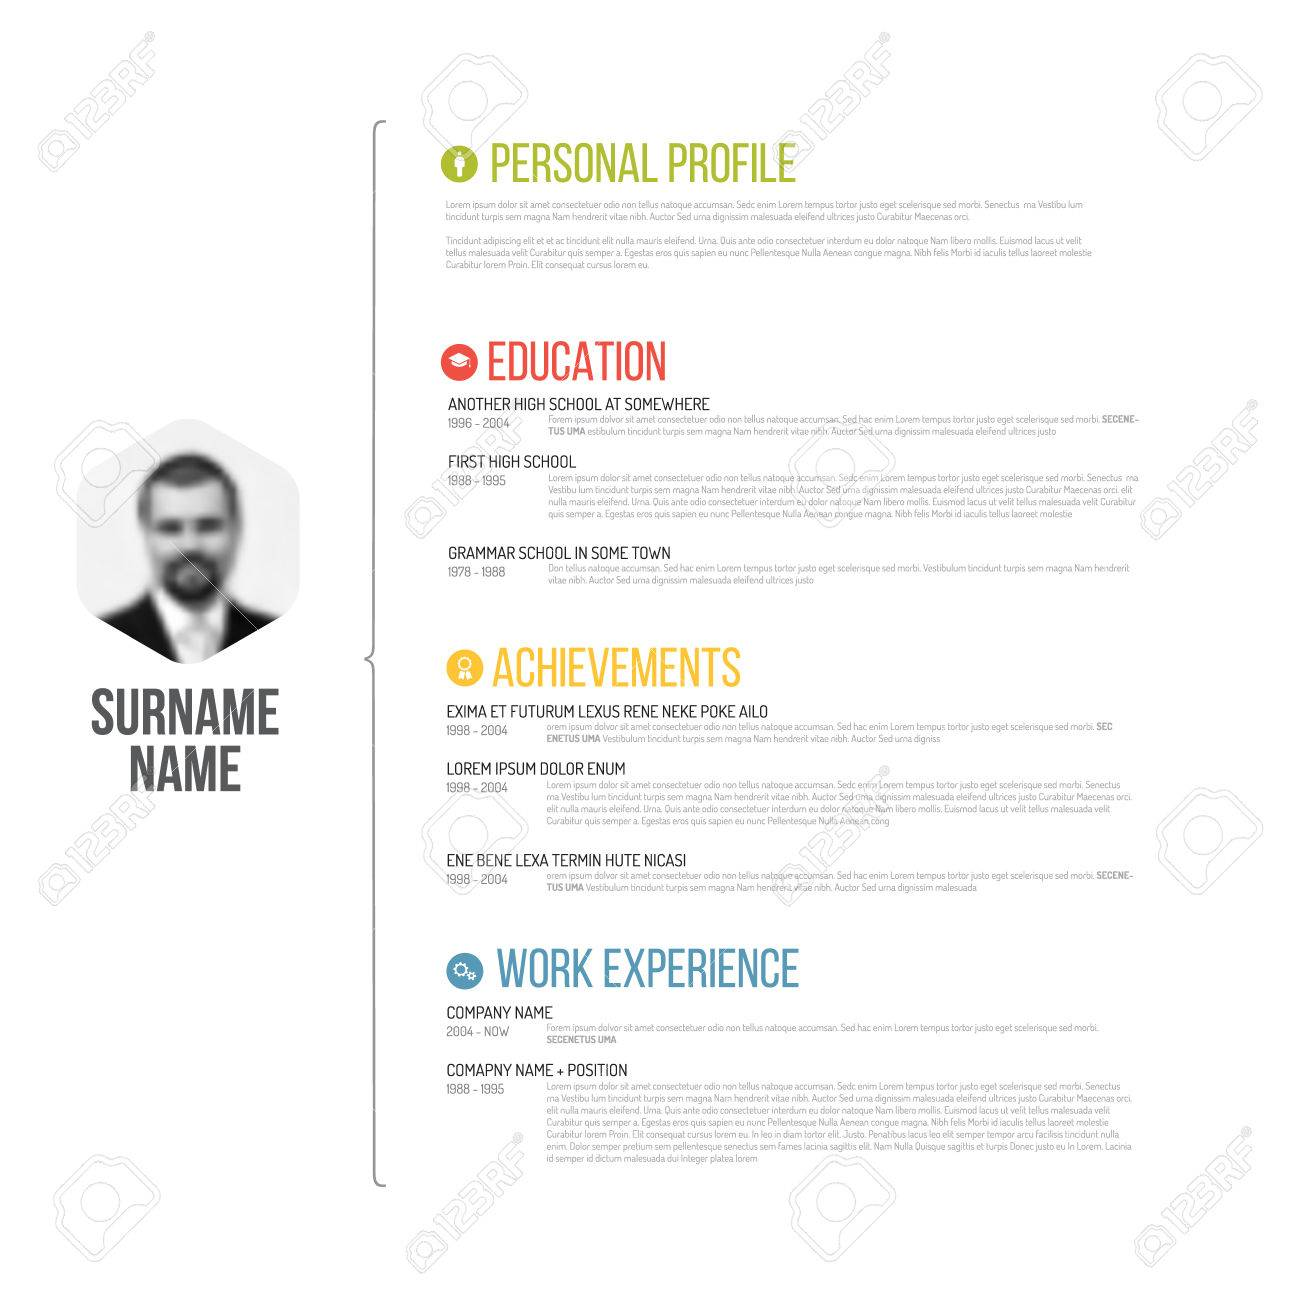 vector vector minimalist cv resume template design with profile photo - Minimalist Resume Template